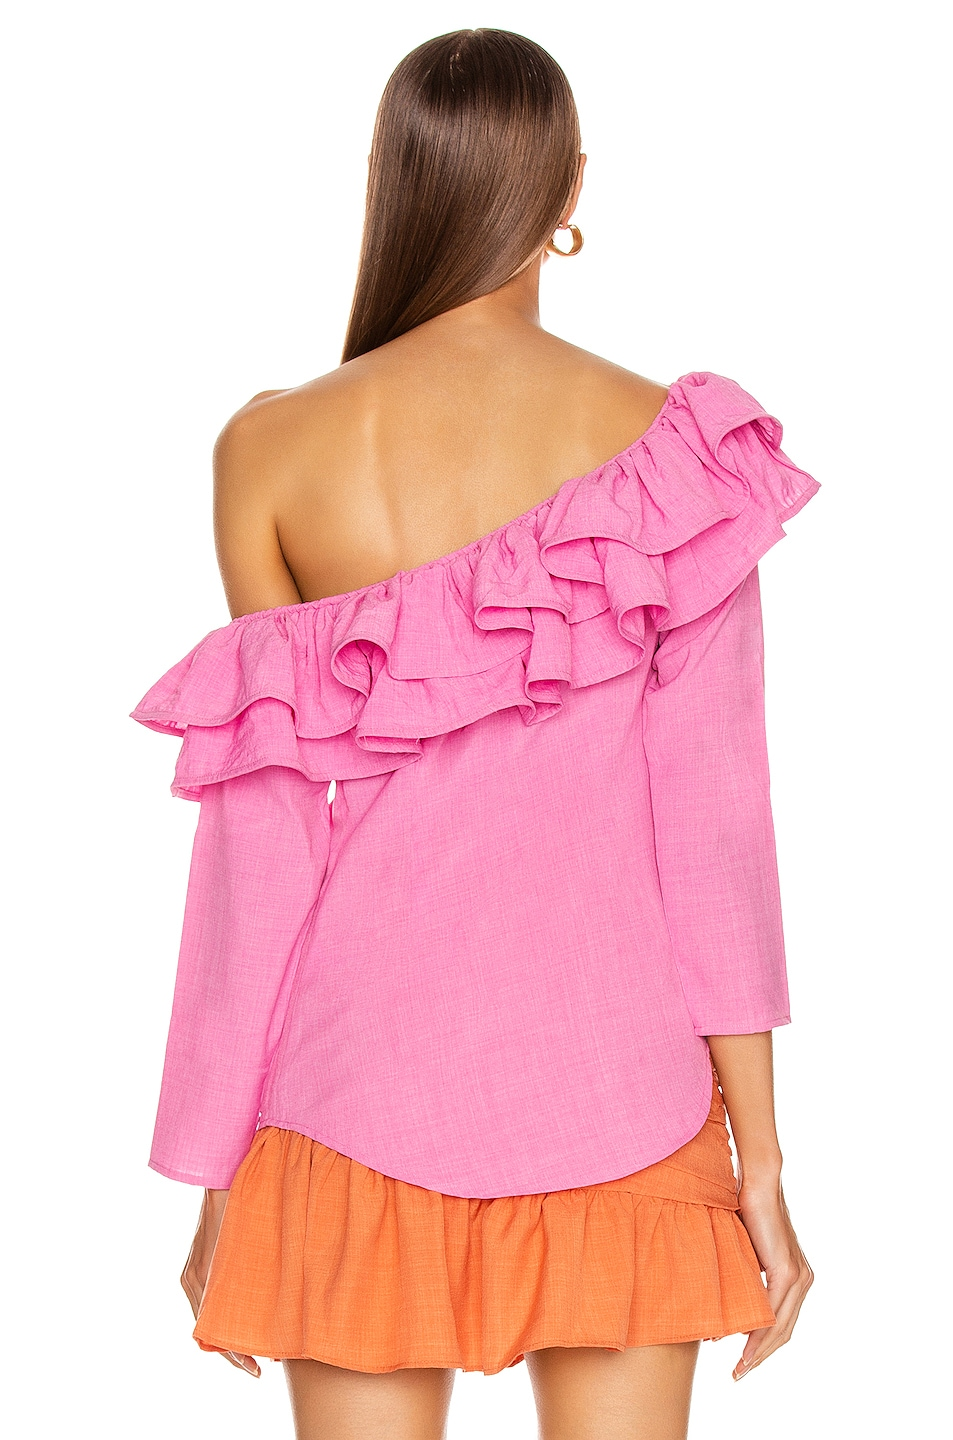 Image 4 of Atoir Not Going Back Top in Fuchsia Pink